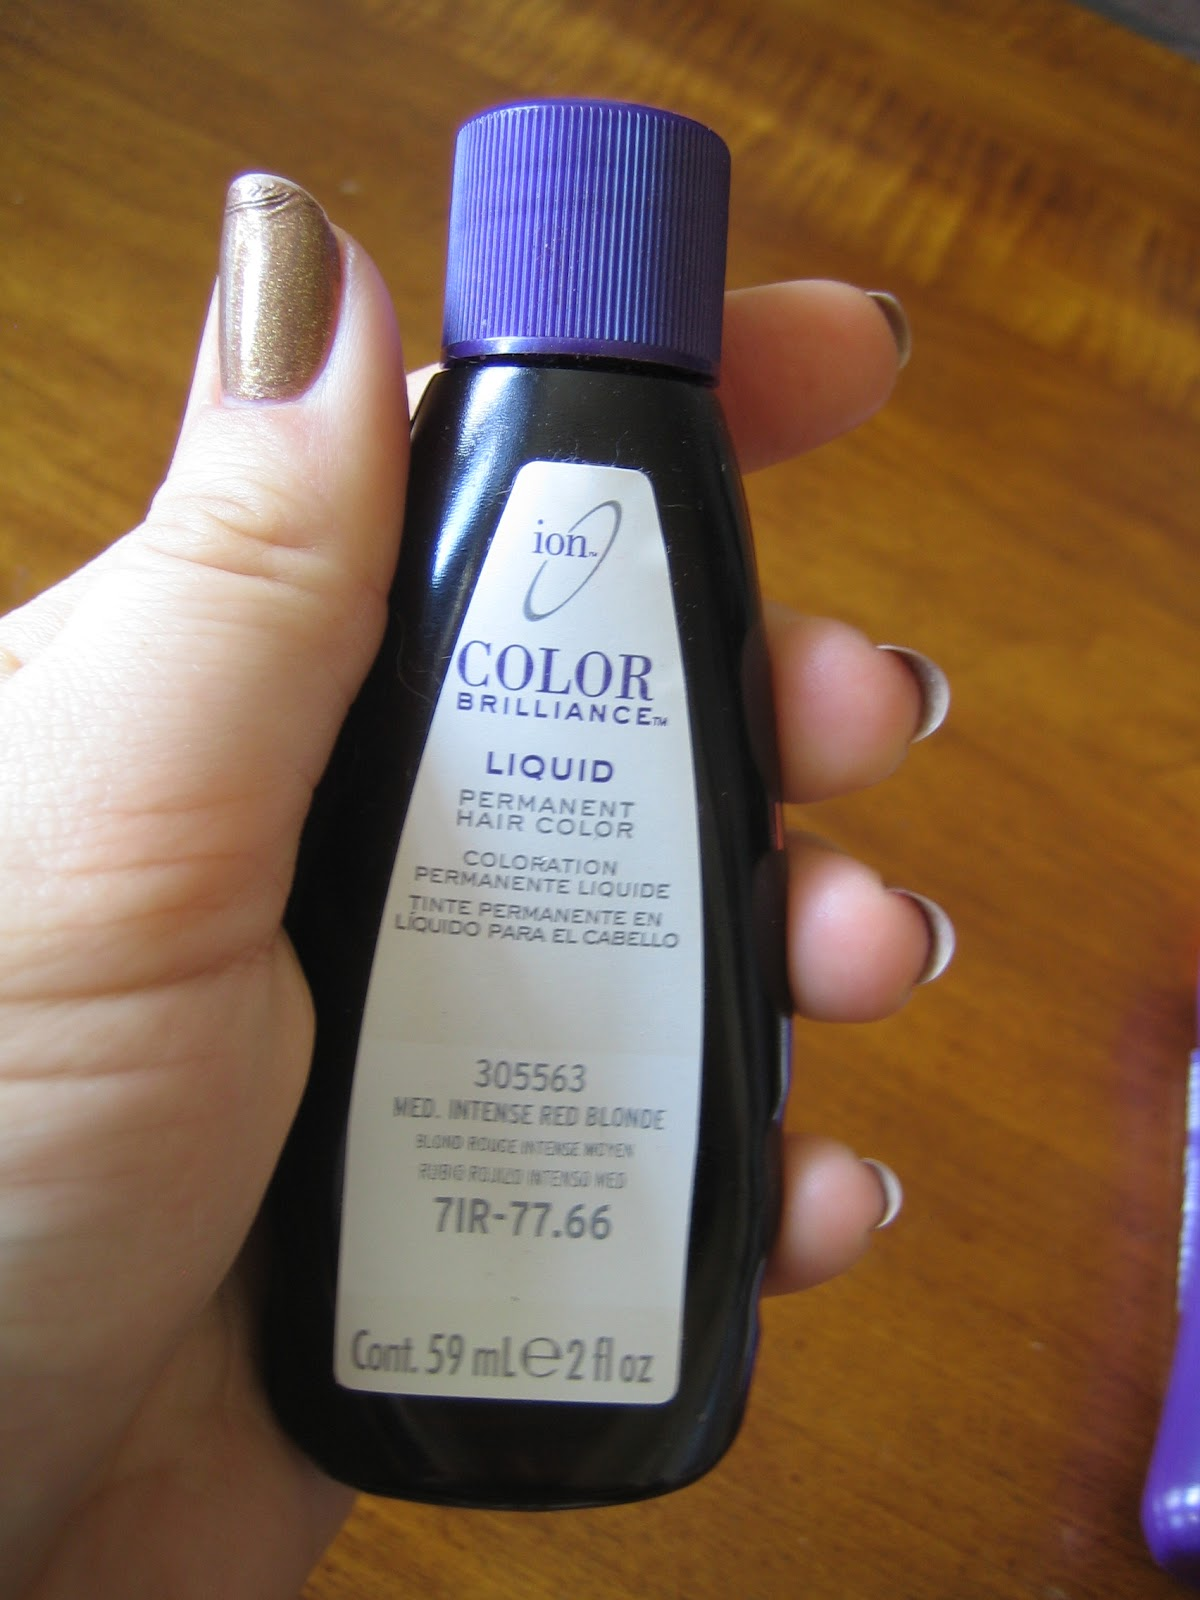 The bottle of dye itself also bower blisse review and tips ion color brilliance liquid hair rh bowerofblissespot